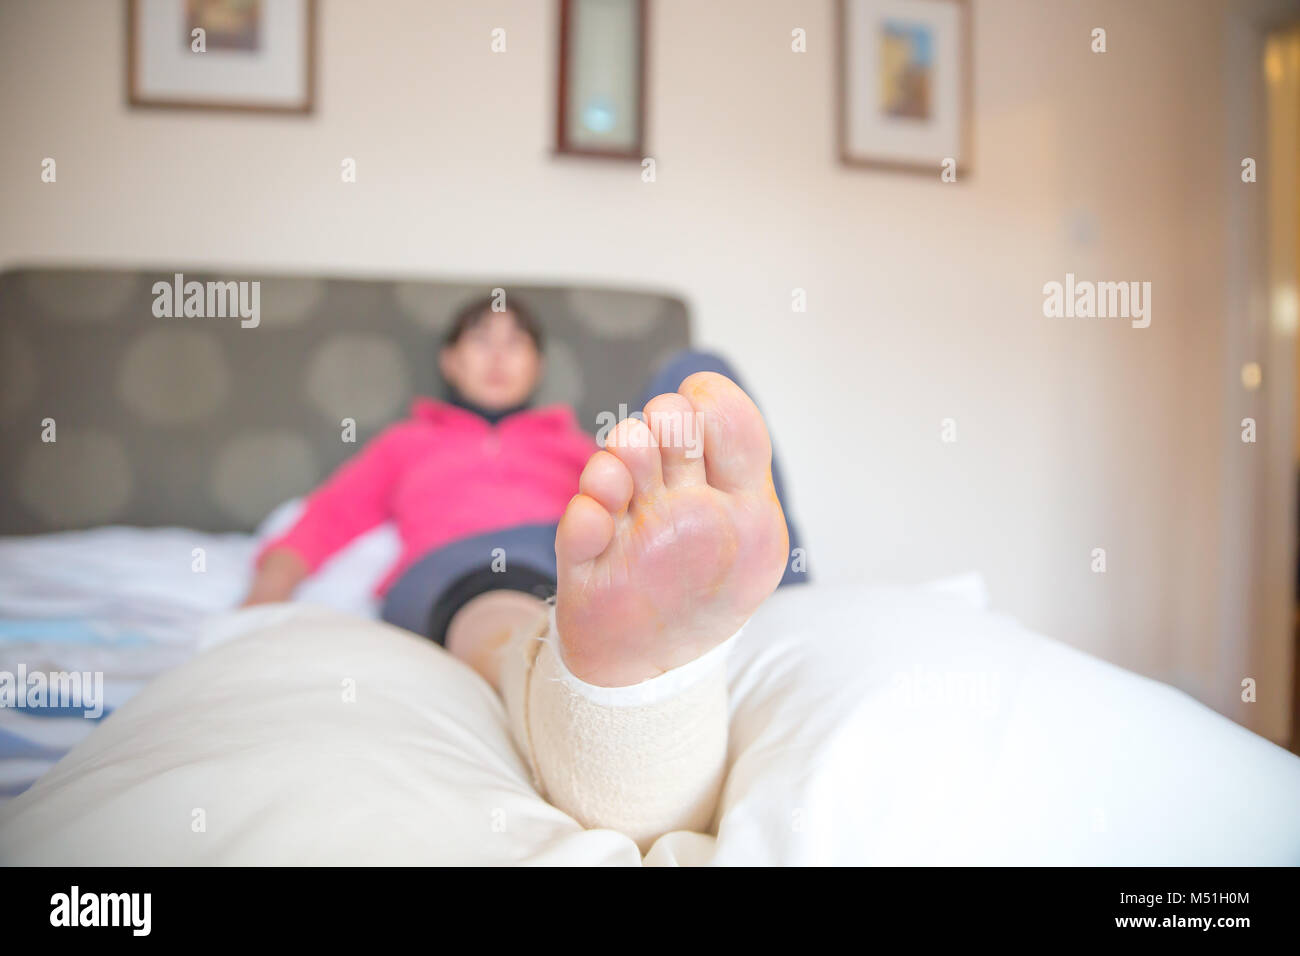 Sore, bandaged foot of woman (showing sole) resting carefully on pillow as sad patient lies on a bed at home, recovering - Stock Image